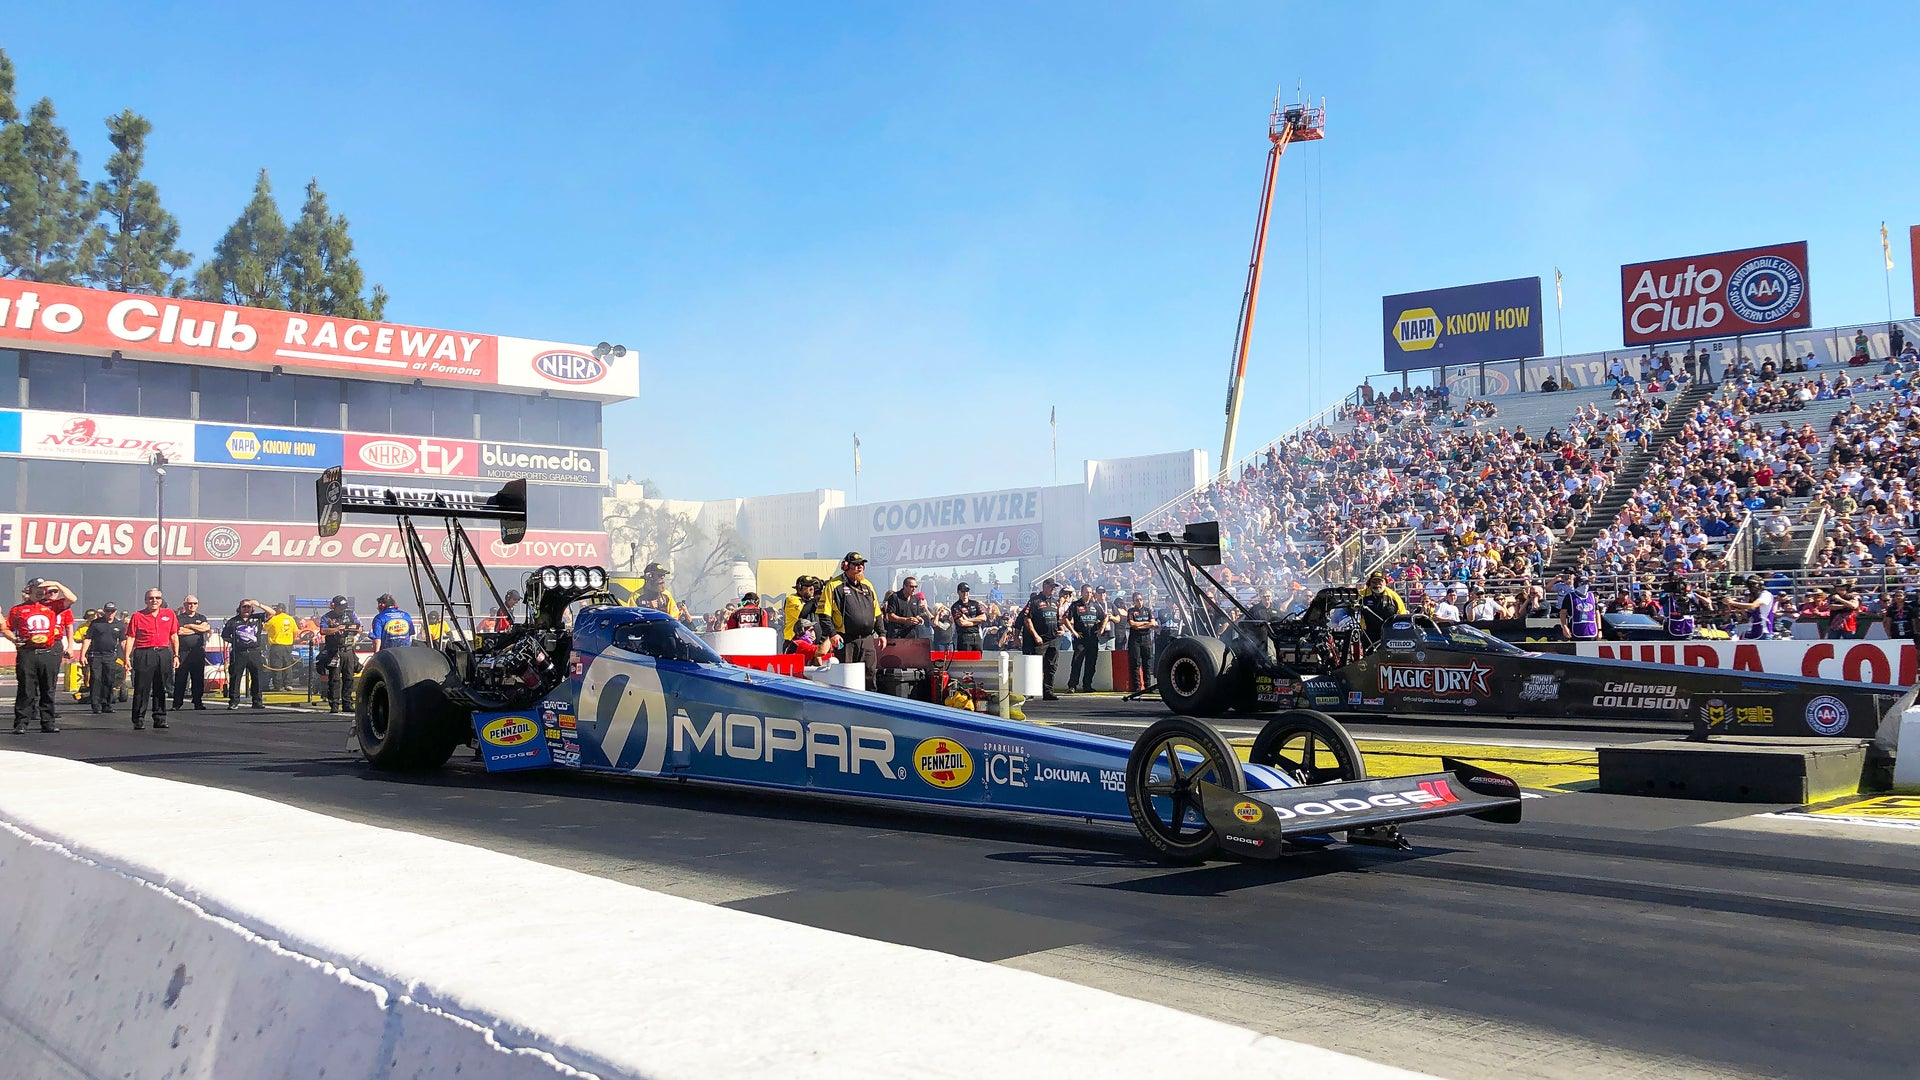 Leah raced to a semifinal finish and improved one spot up to fourth behind the wheel of her MOPAR-powered Top Fuel dragster